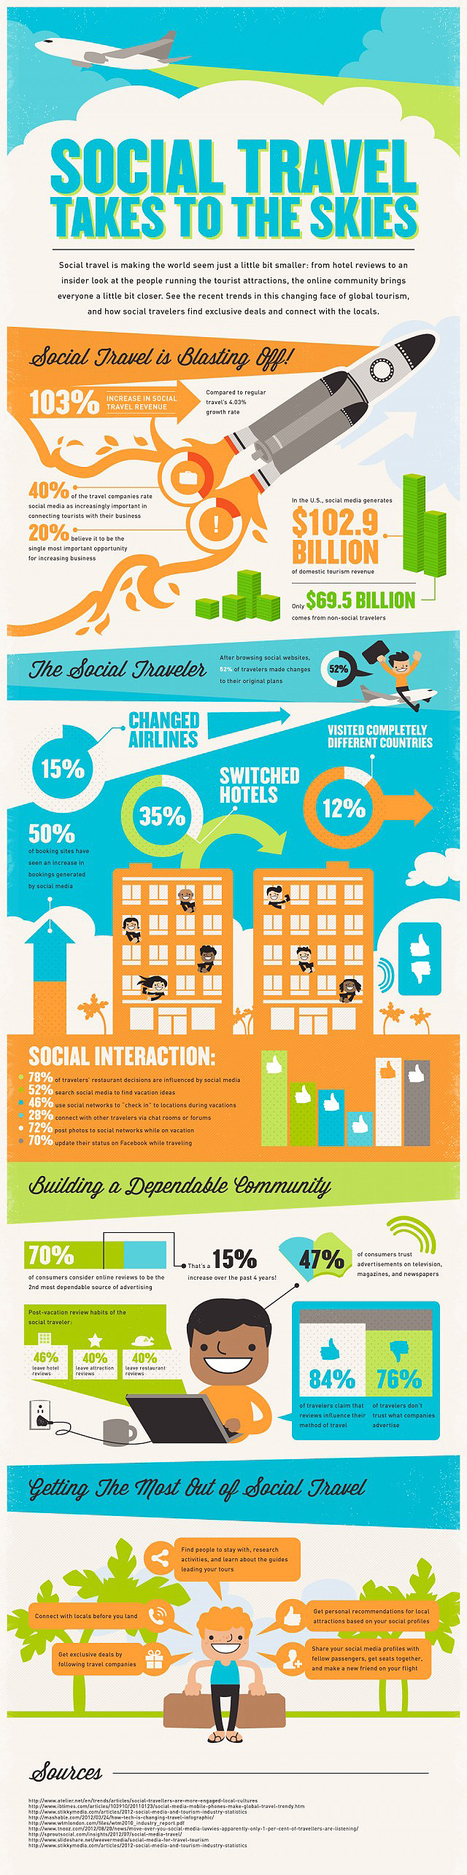 How Social Media Affects Your Travel Plans [Infographic] | I FIND HOLIDAYS | Scoop.it